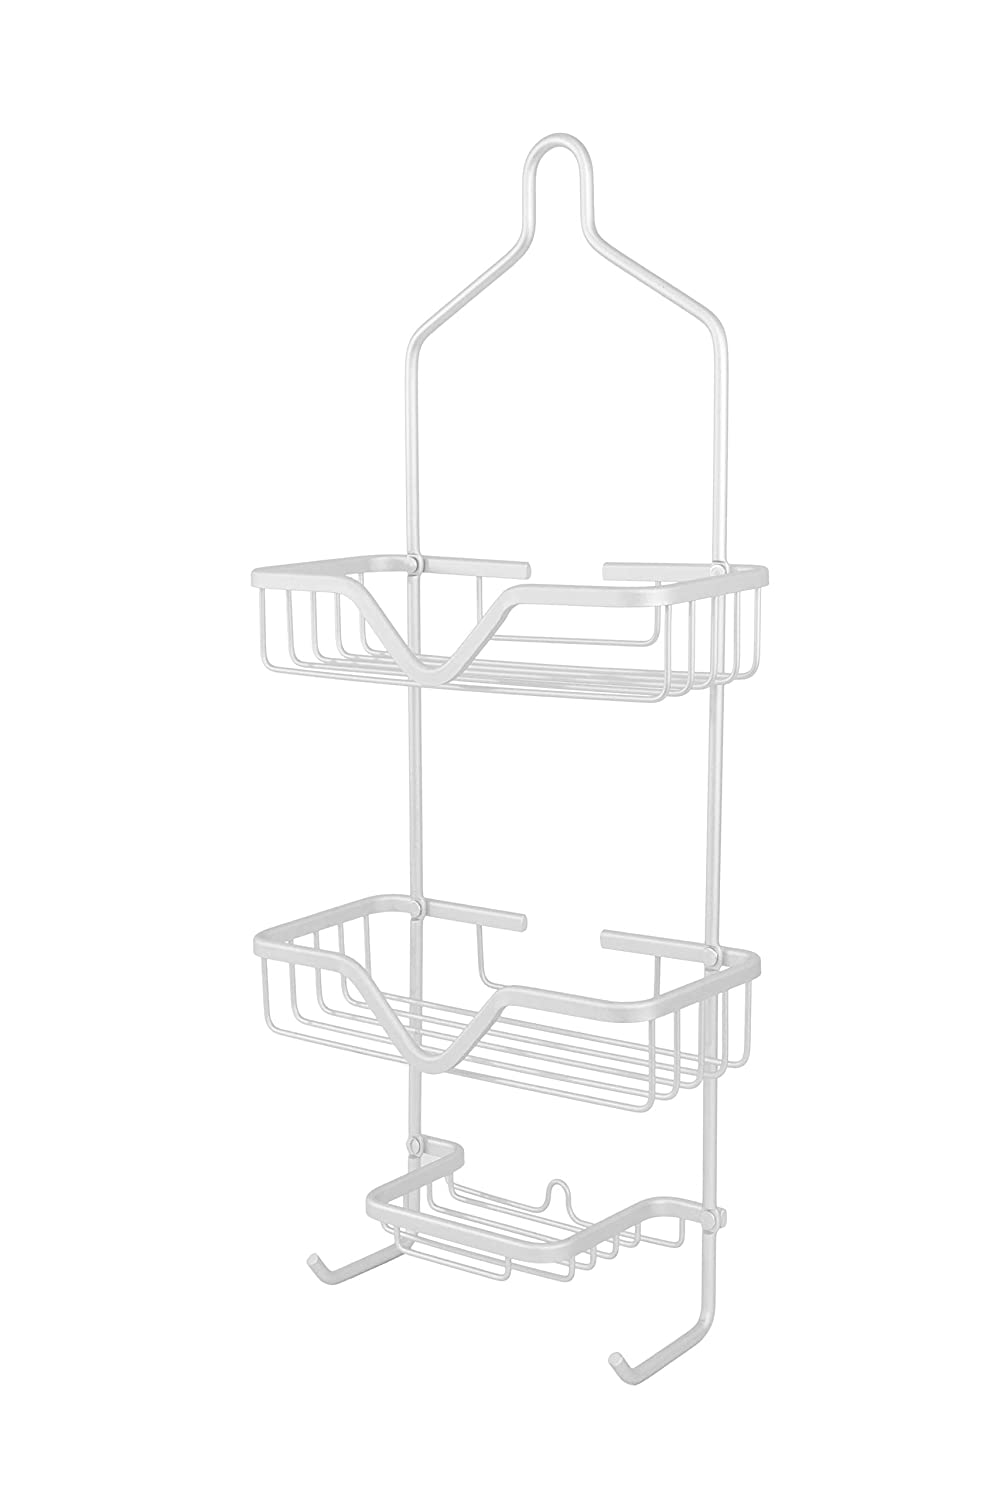 Rust-Proof AluminumShower Caddy Brighton in Matte Silver ; by Vanderbilt Home V05627